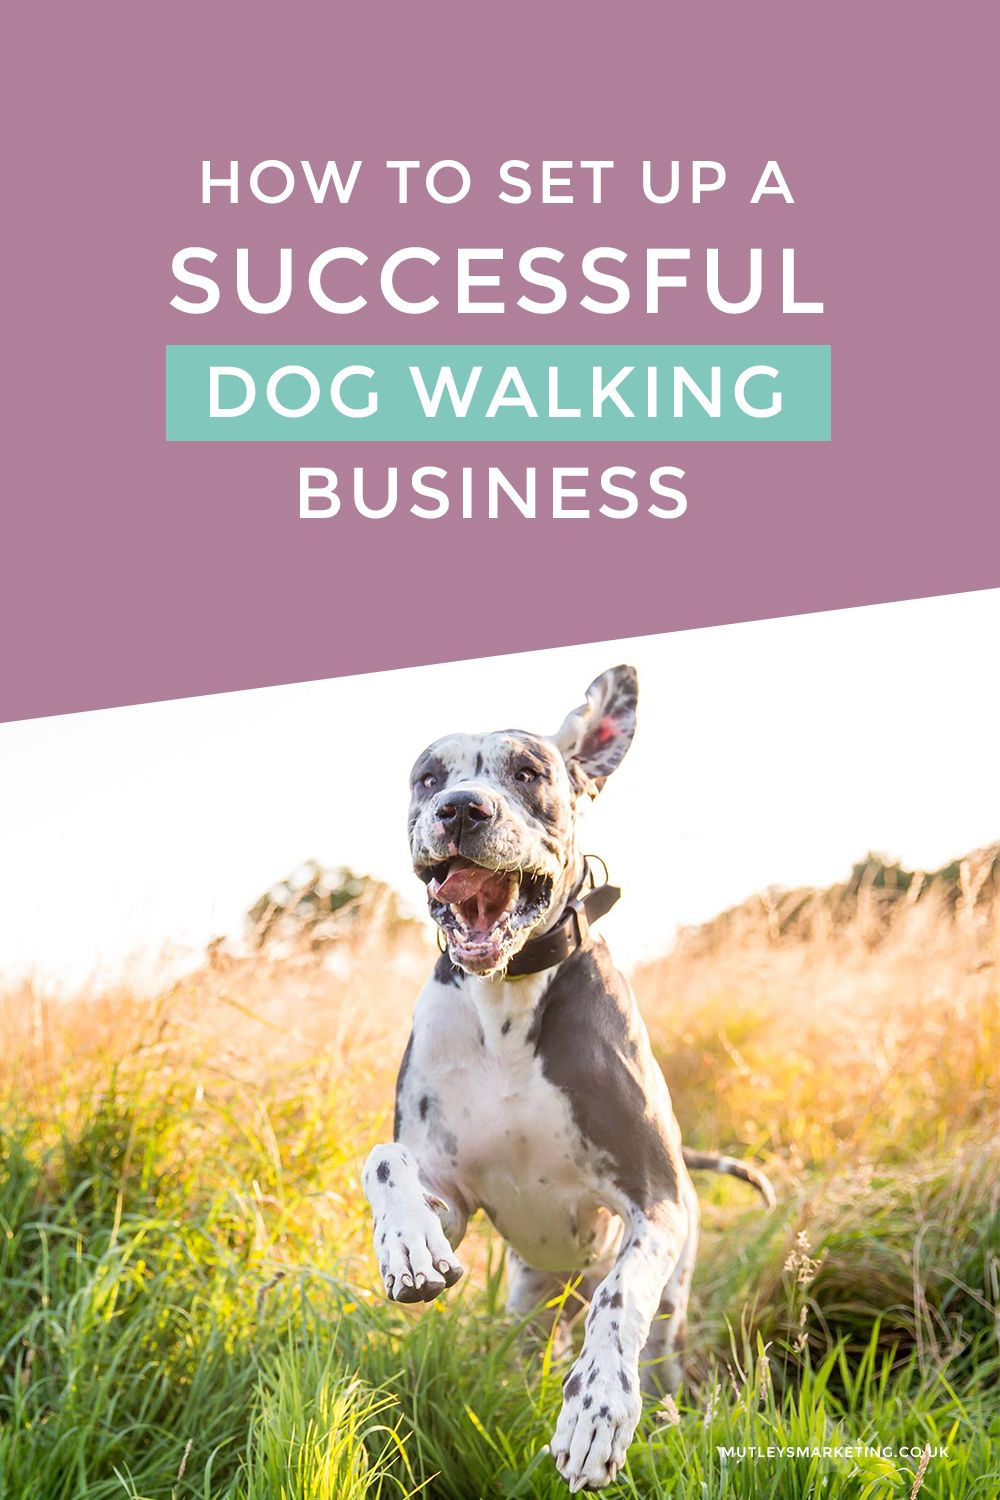 How To Set Up A Successful Dog Walking Business